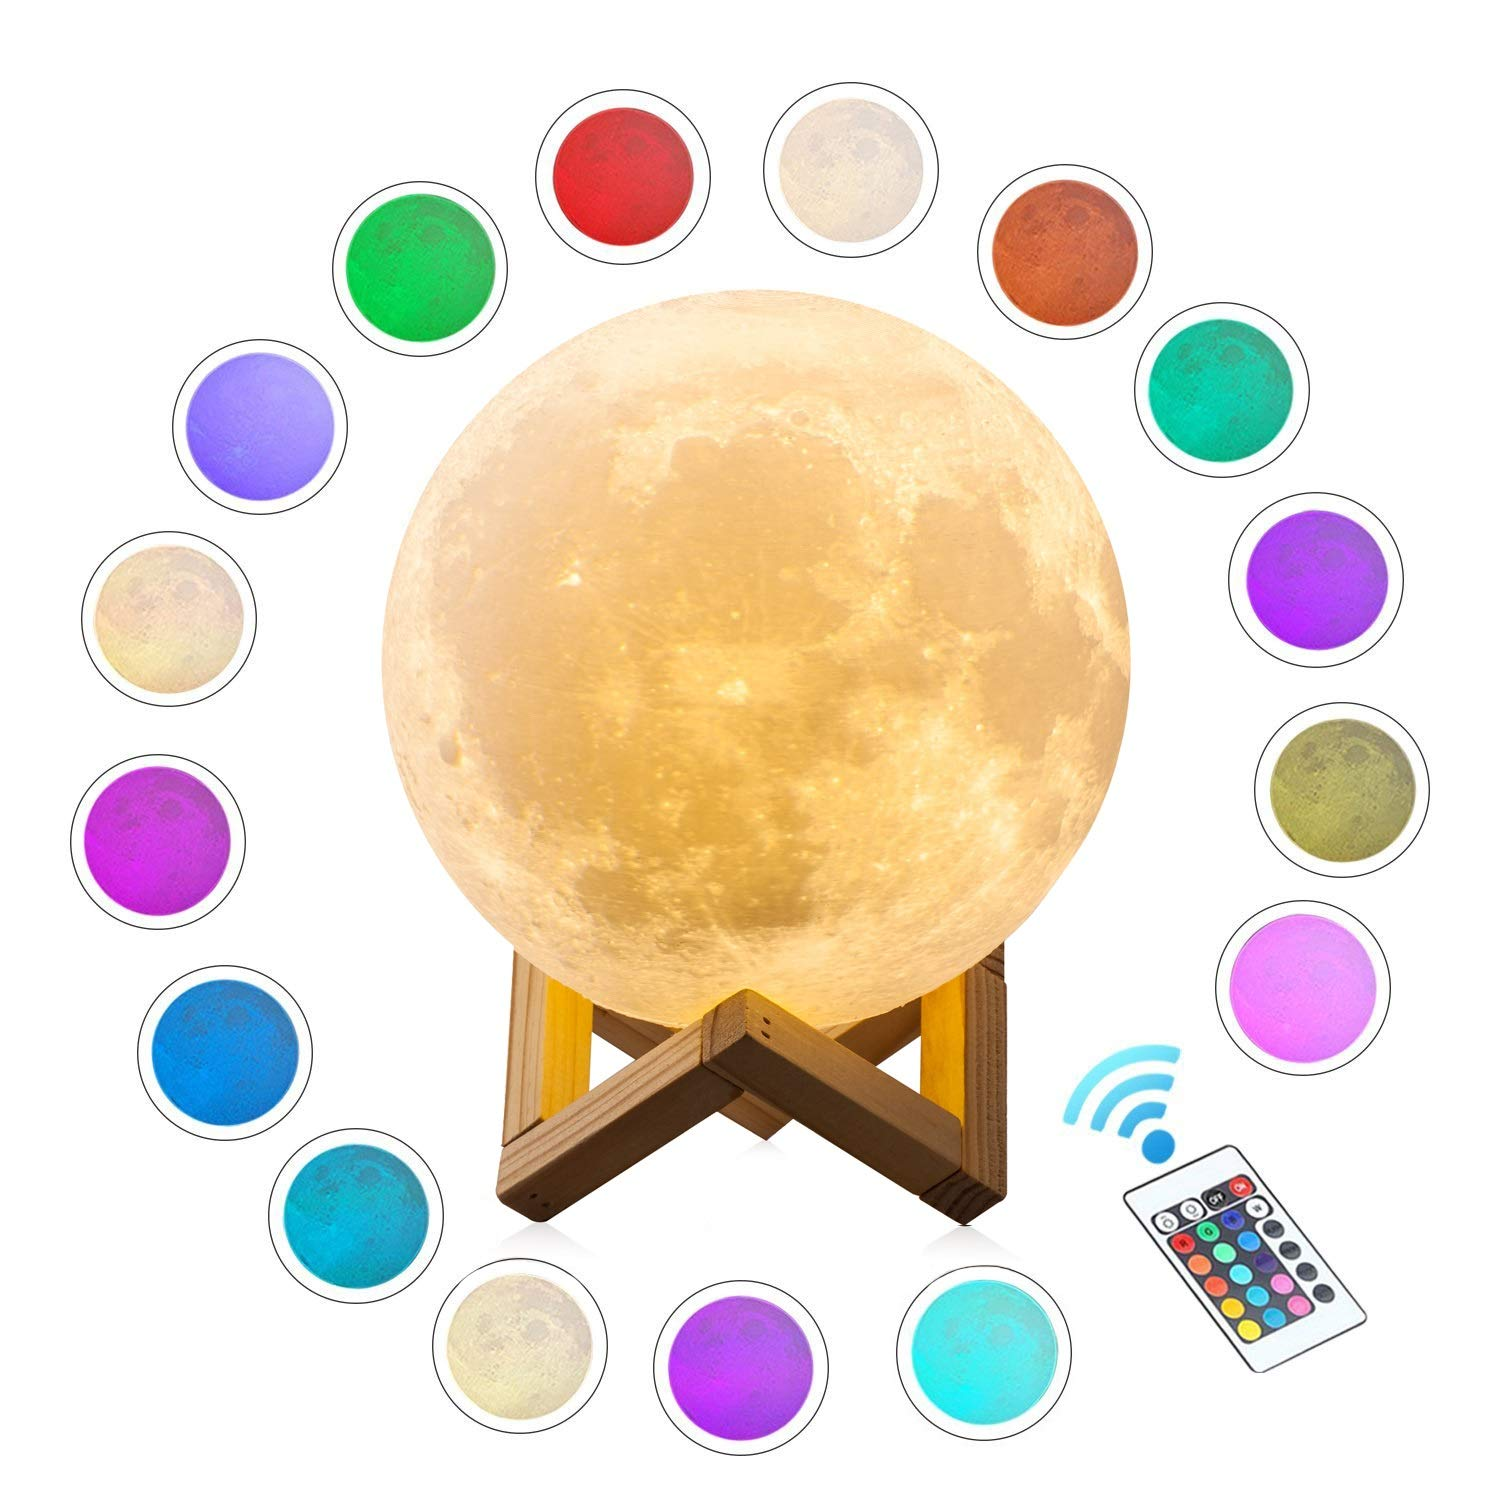 Extra Large!!! CPLA Seamless Moon Lamp 16 Colors LED Lunar Lamp Dimmable Brightness with Remote & Touch Control Large Moon Light Gifts for Love Dimeter 7.1inch